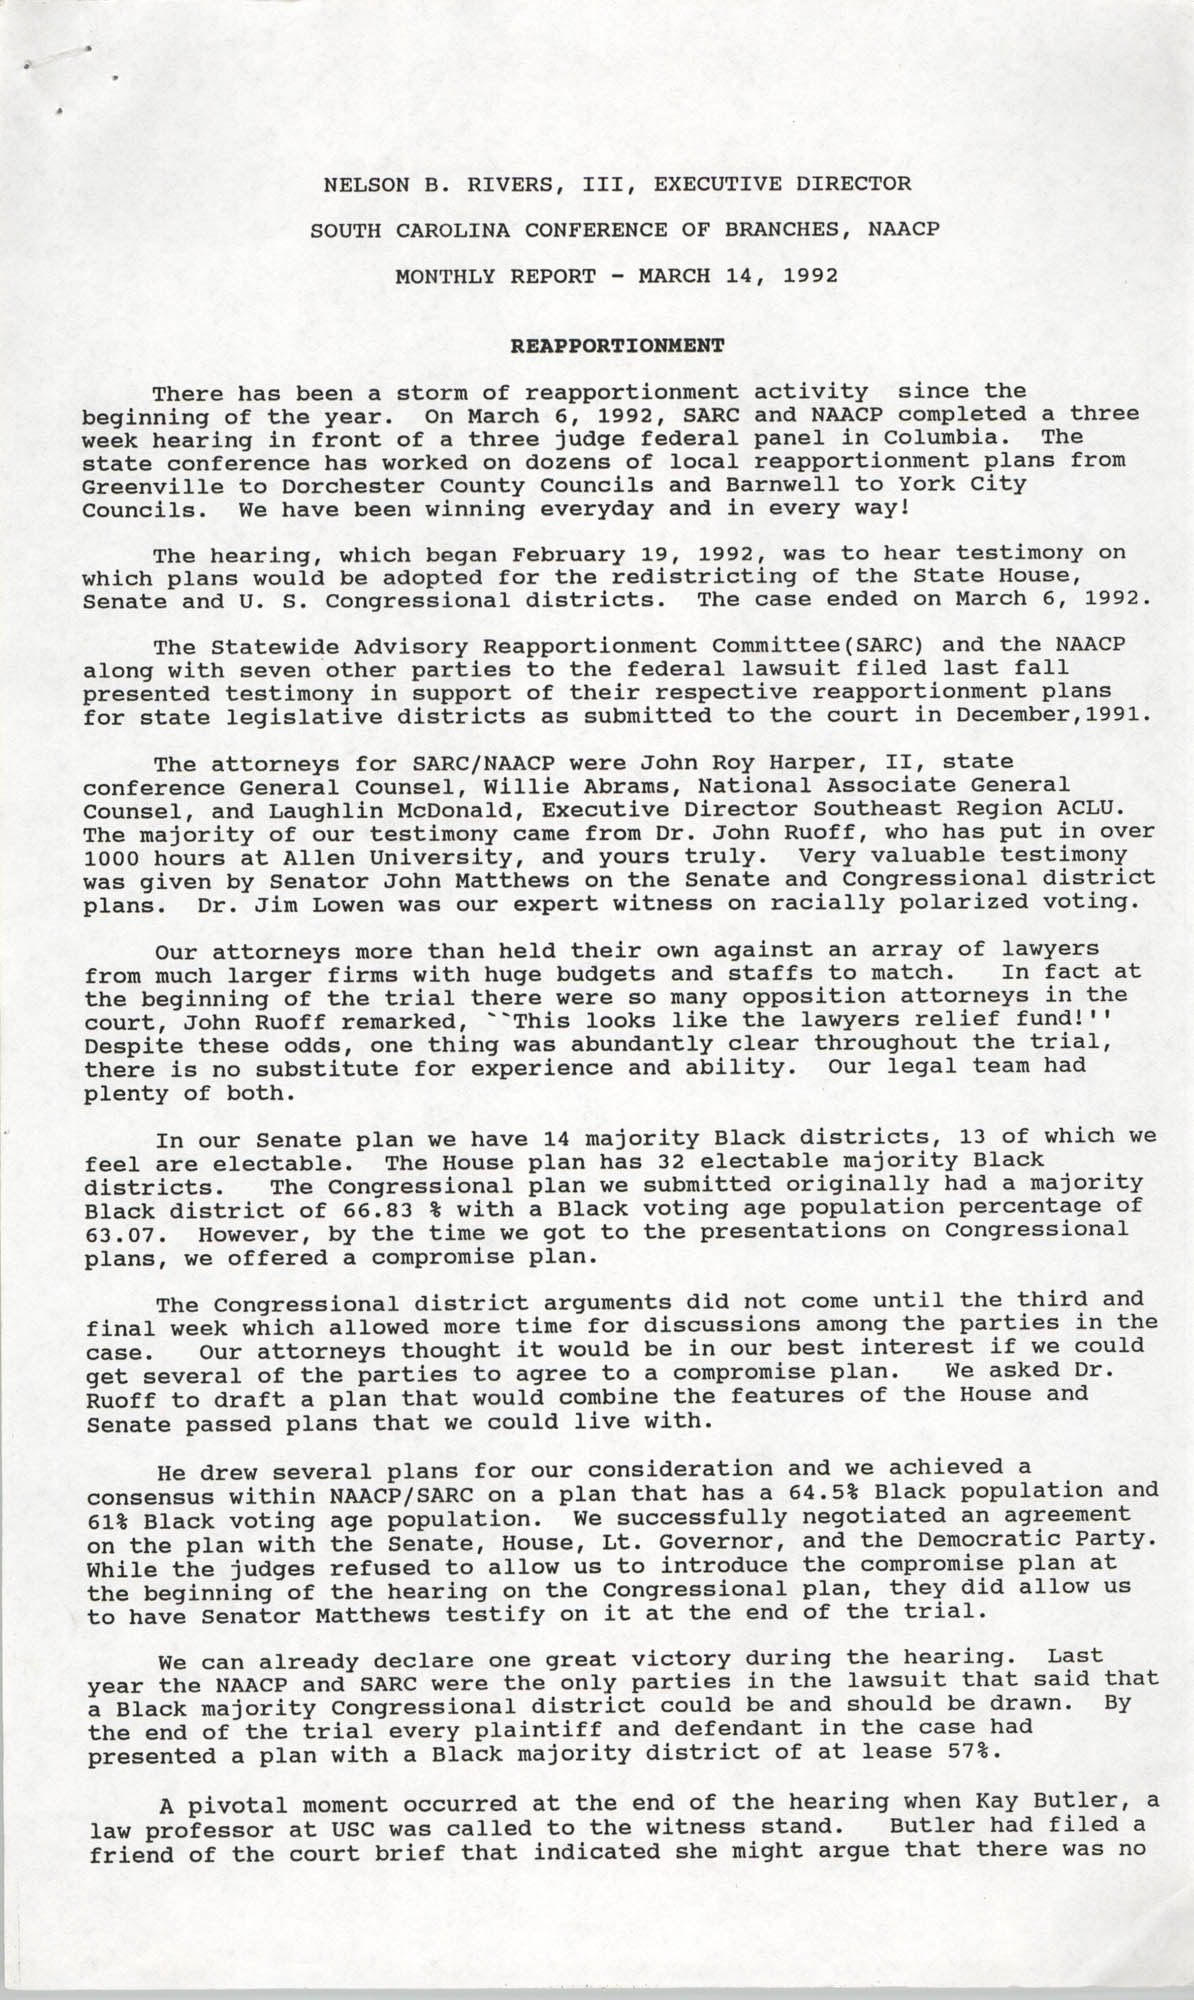 South Carolina Conference of Branches of the NAACP Monthly Report, March 14, 1992